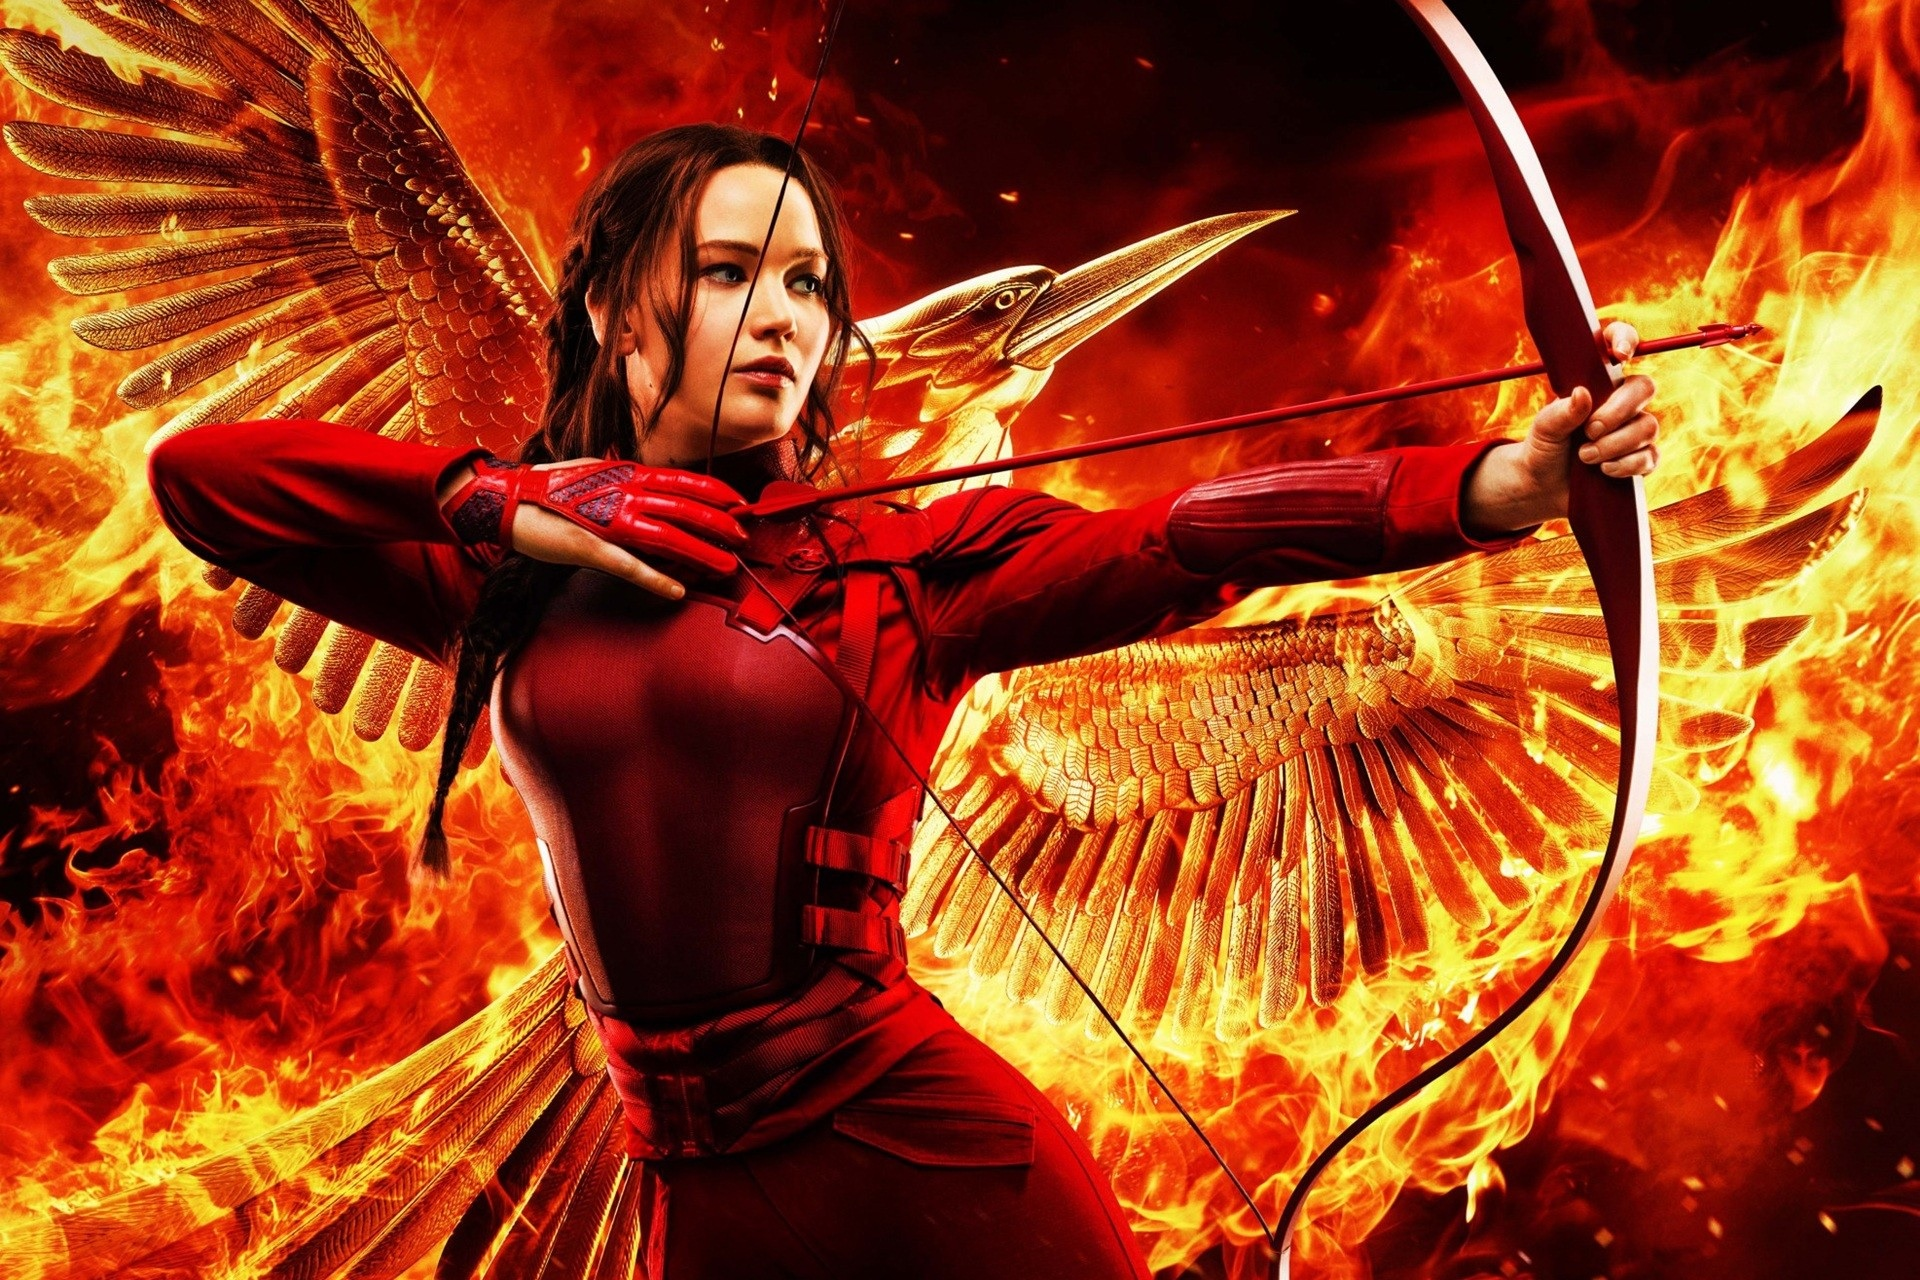 katniss everdeen the hunger games red outfit